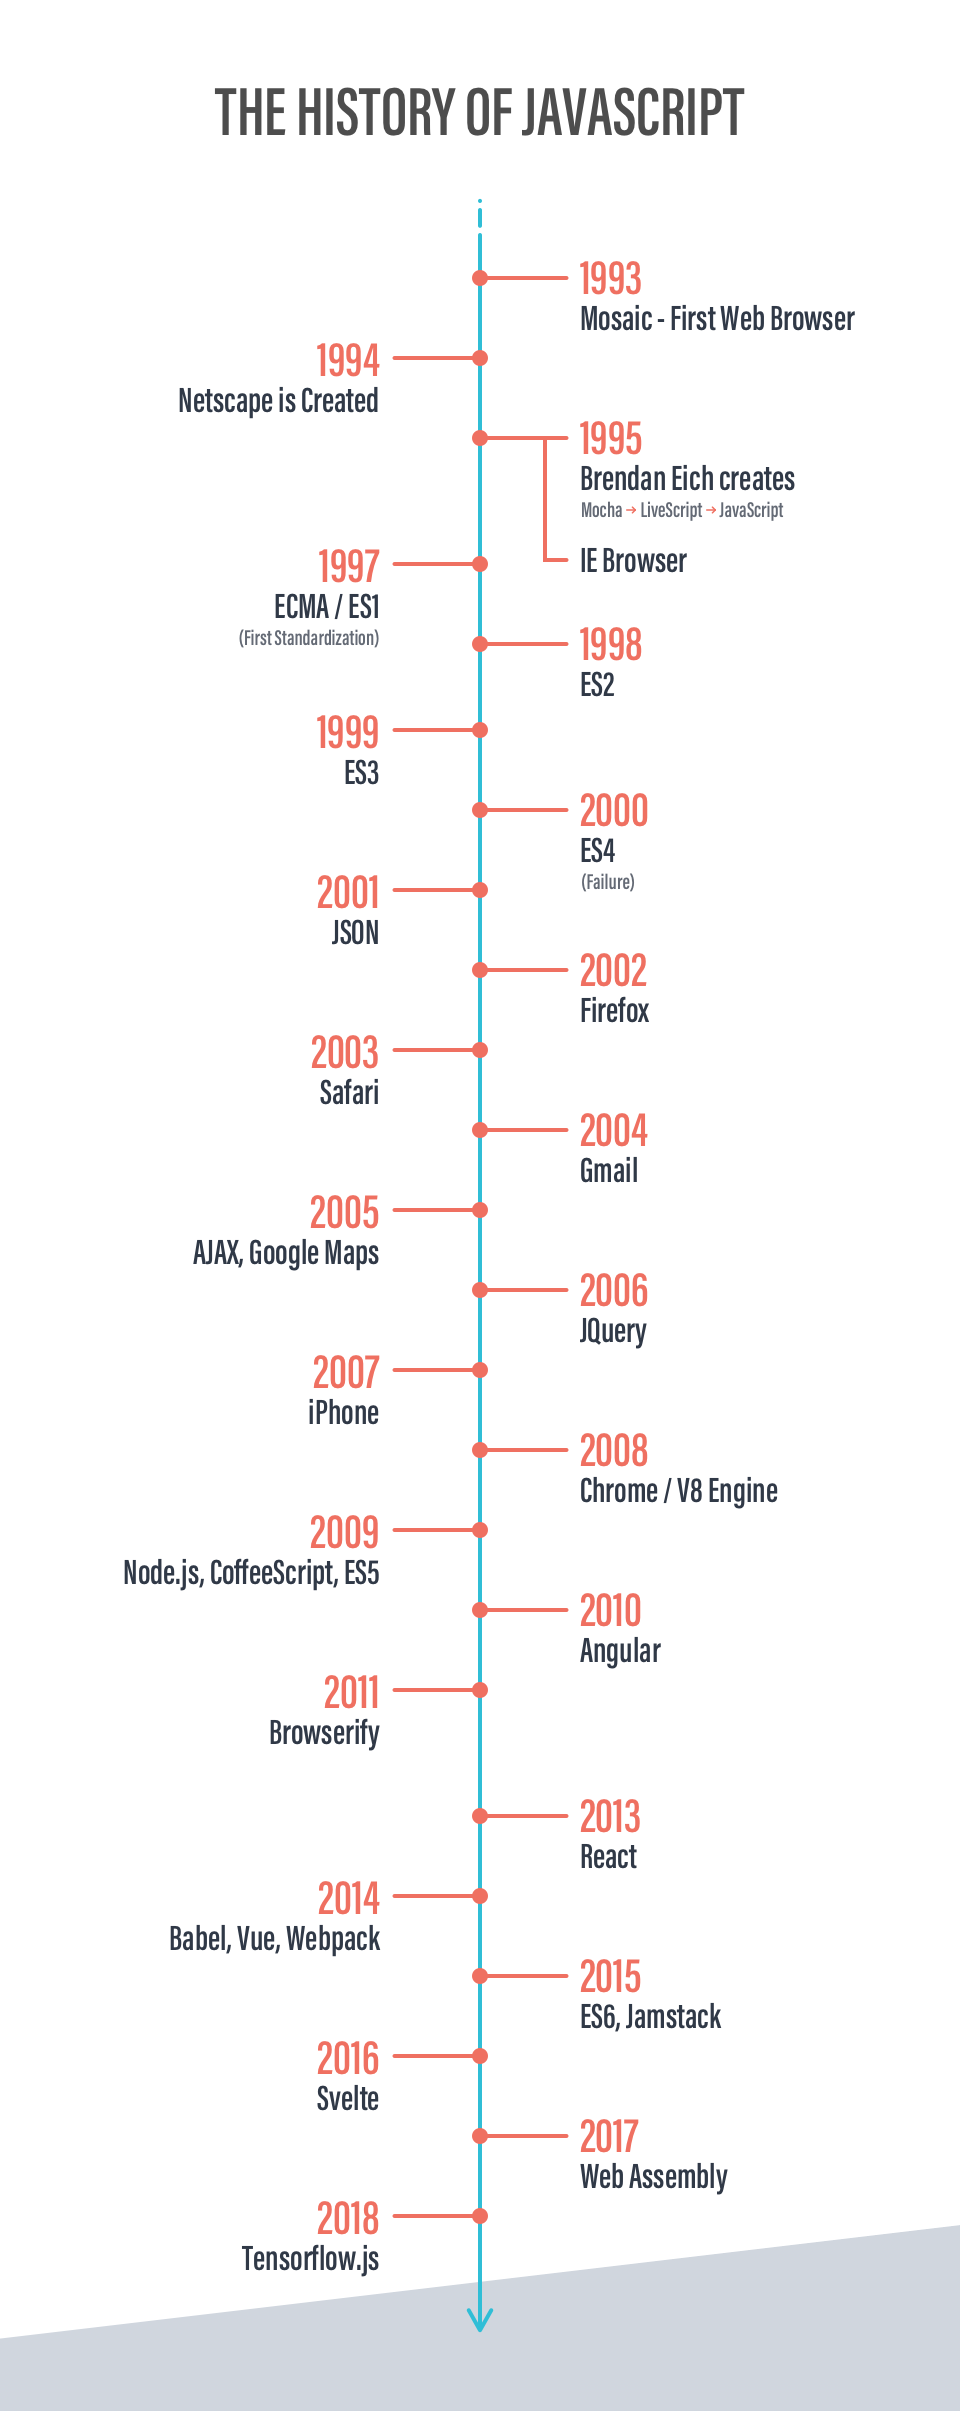 Timeline showing the history of JavaScript